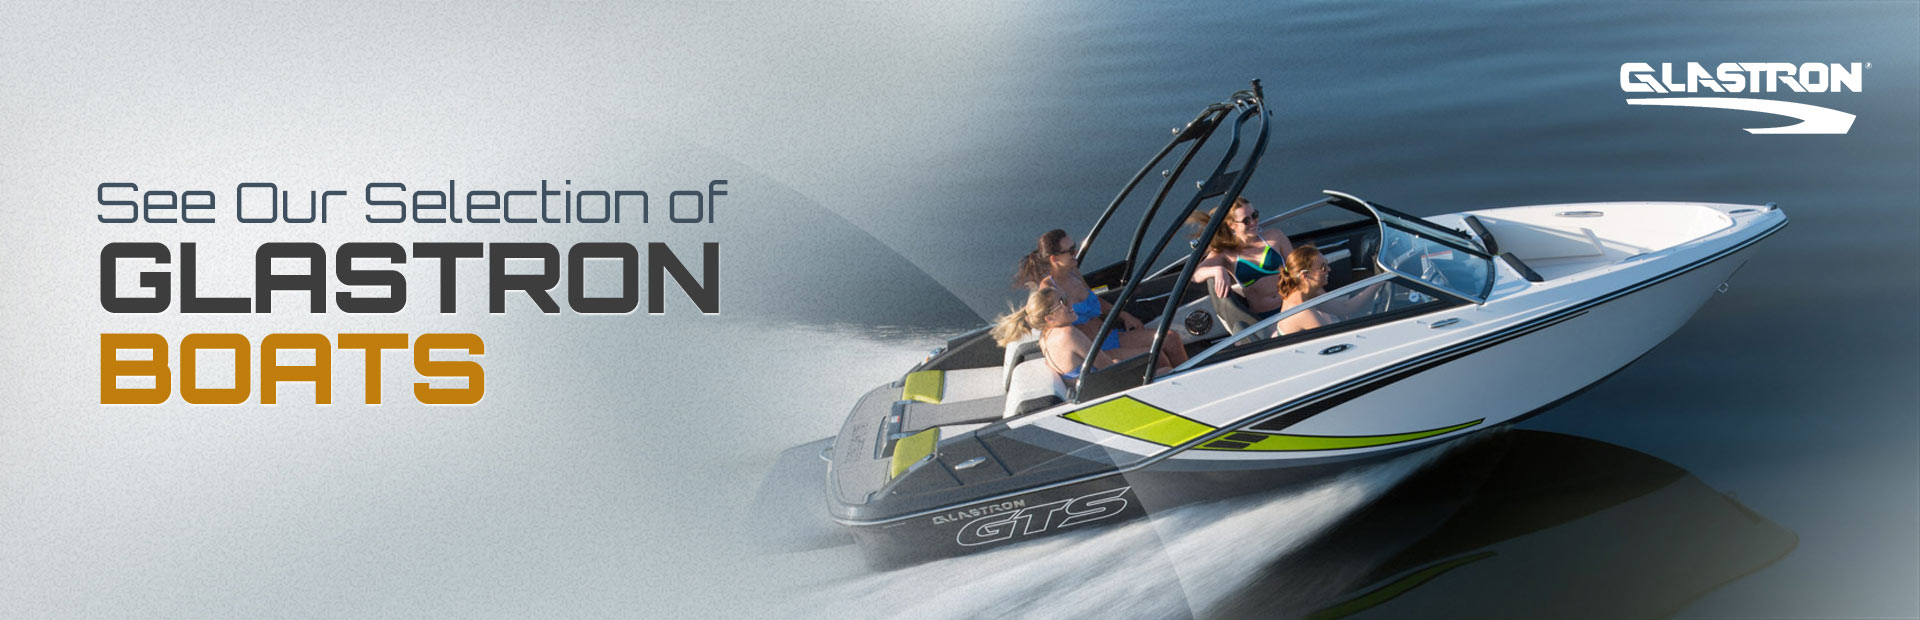 Click here to see our selection of Glastron boats!